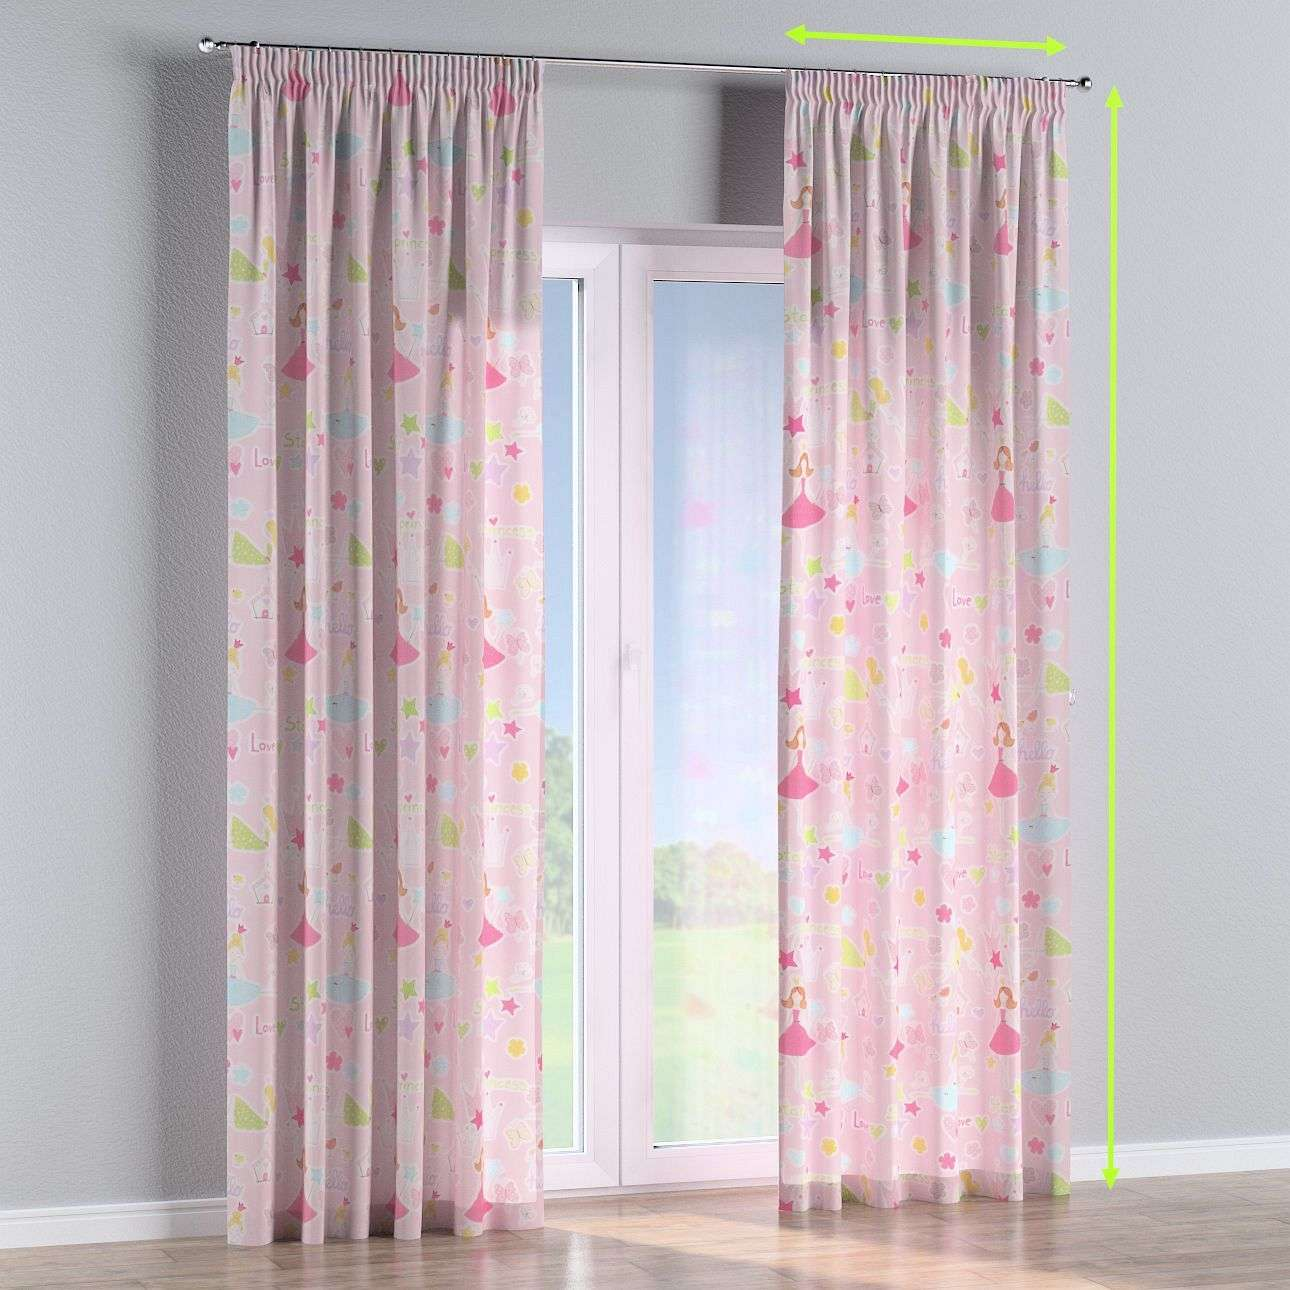 Pencil pleat curtains in collection Little World, fabric: 141-50